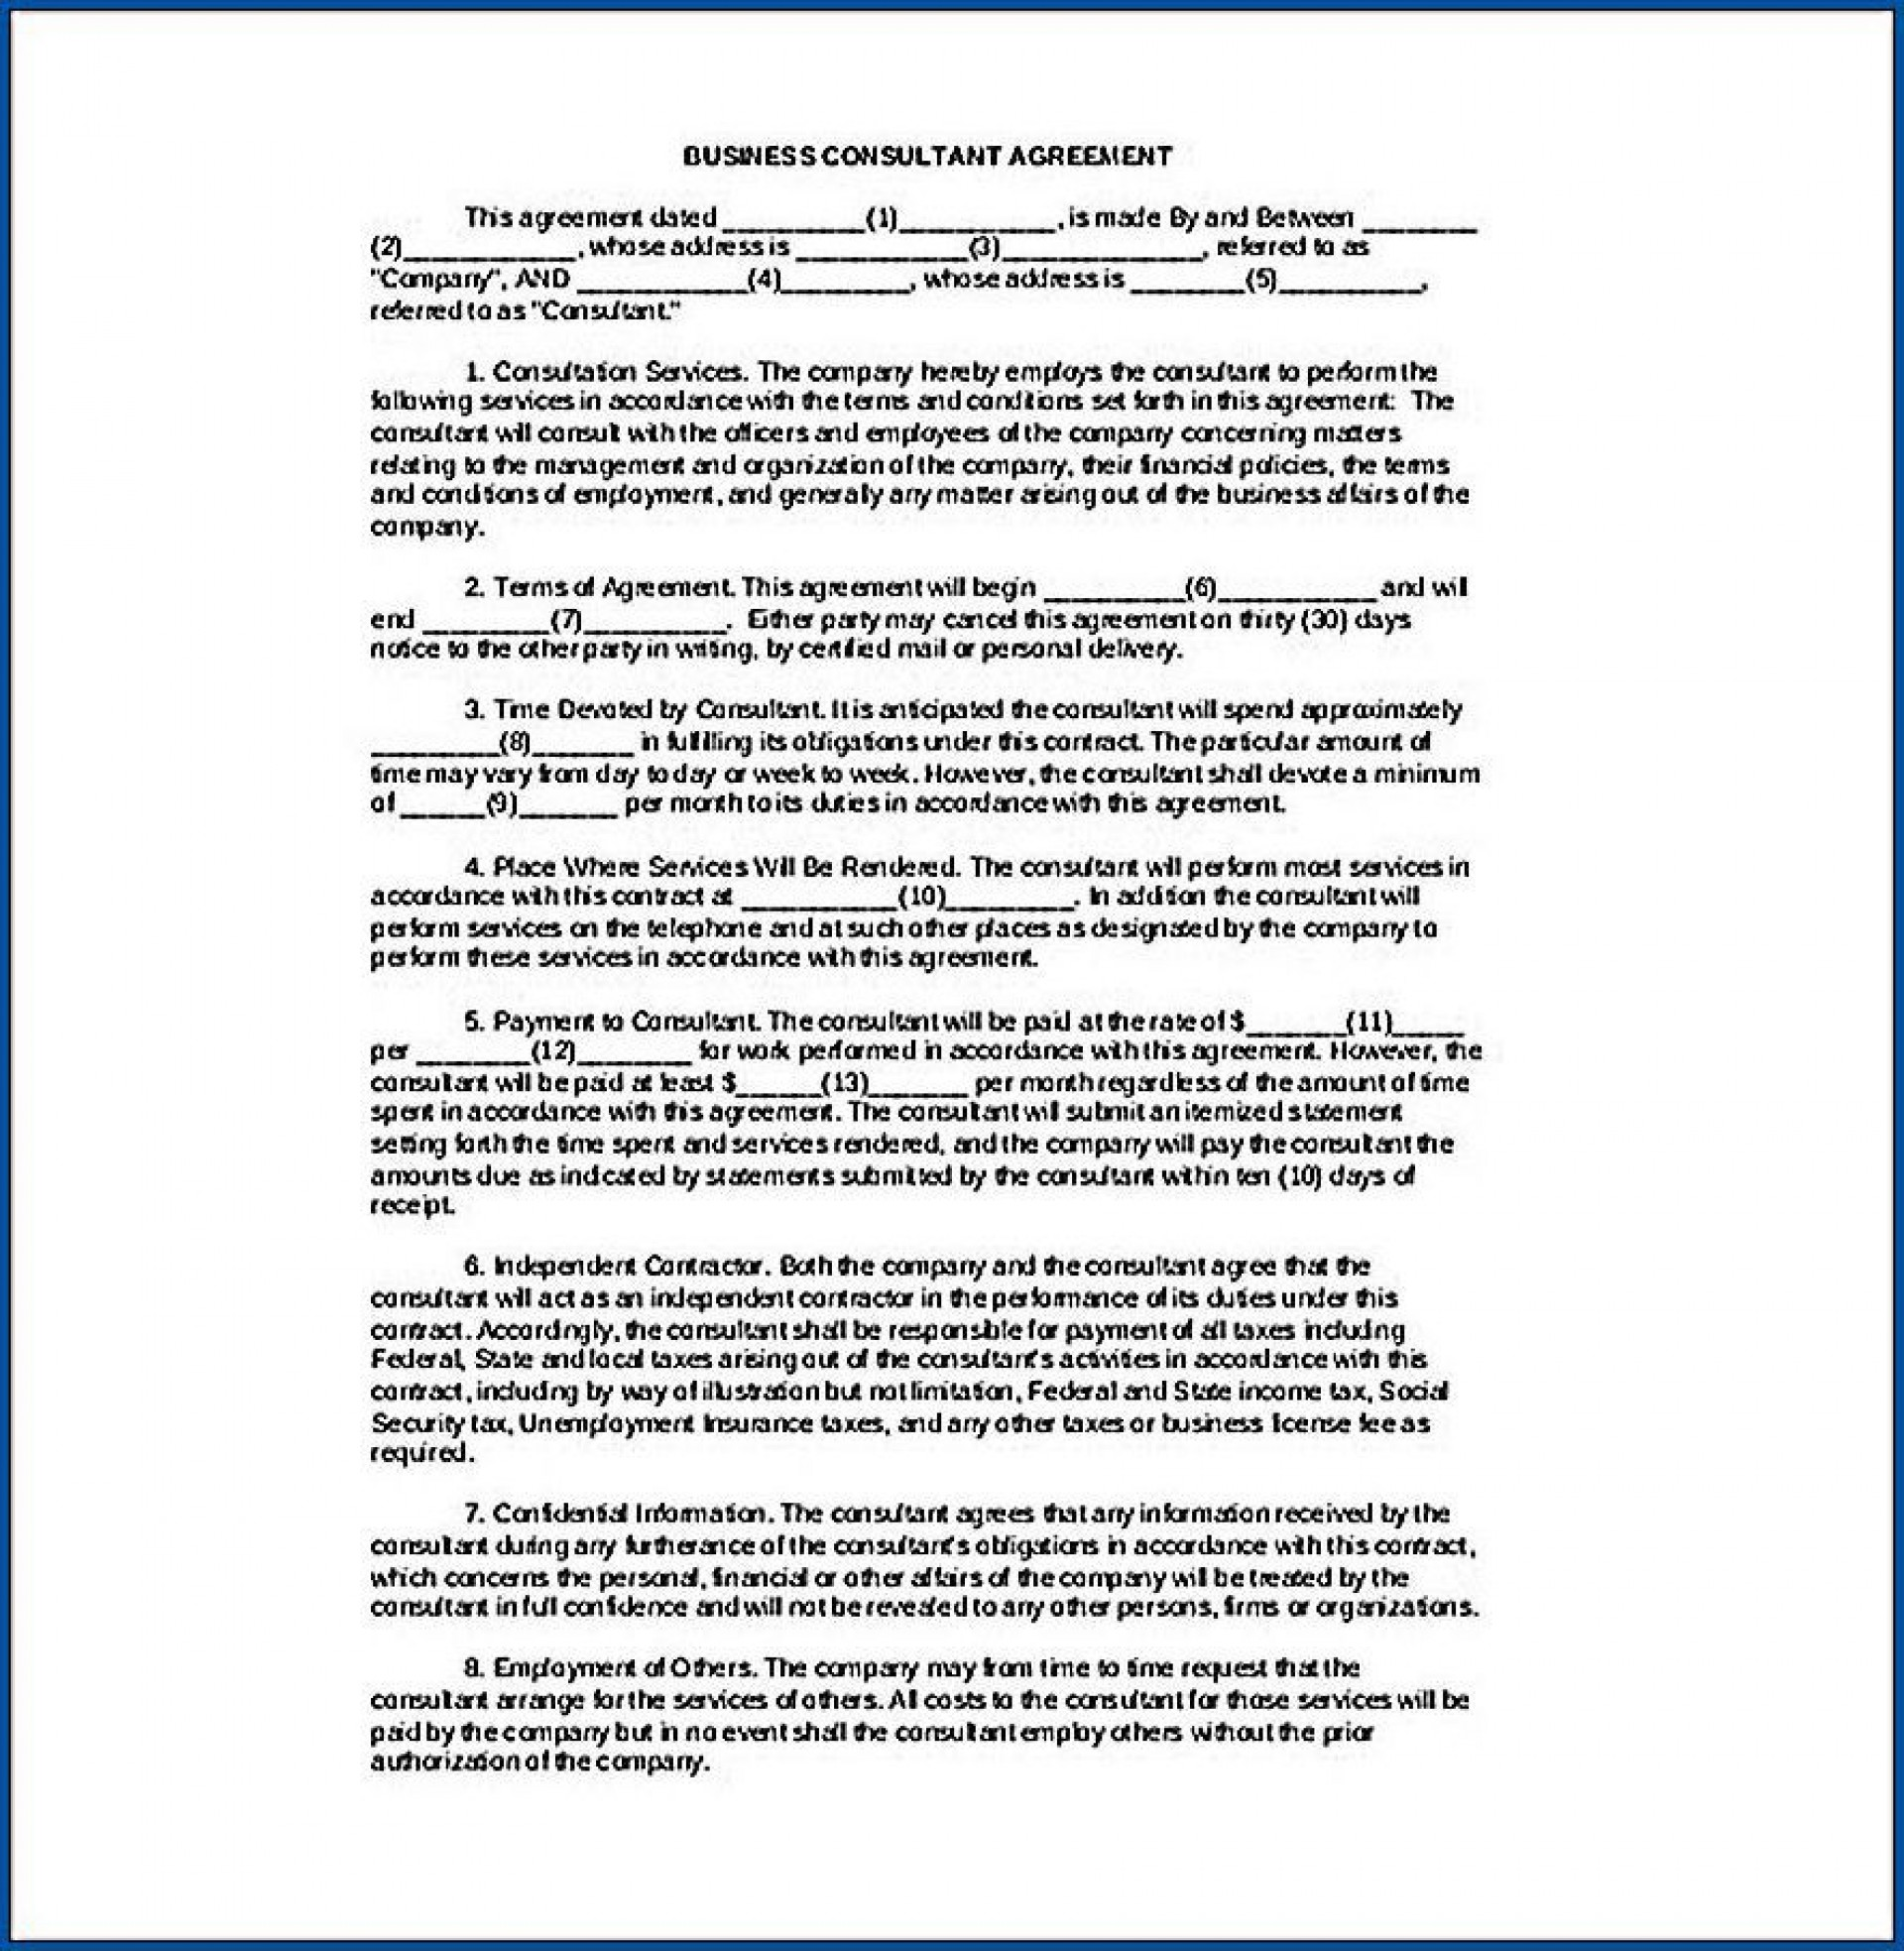 008 Fascinating Free Consulting Agreement Template Idea  Word South Africa Uk1920